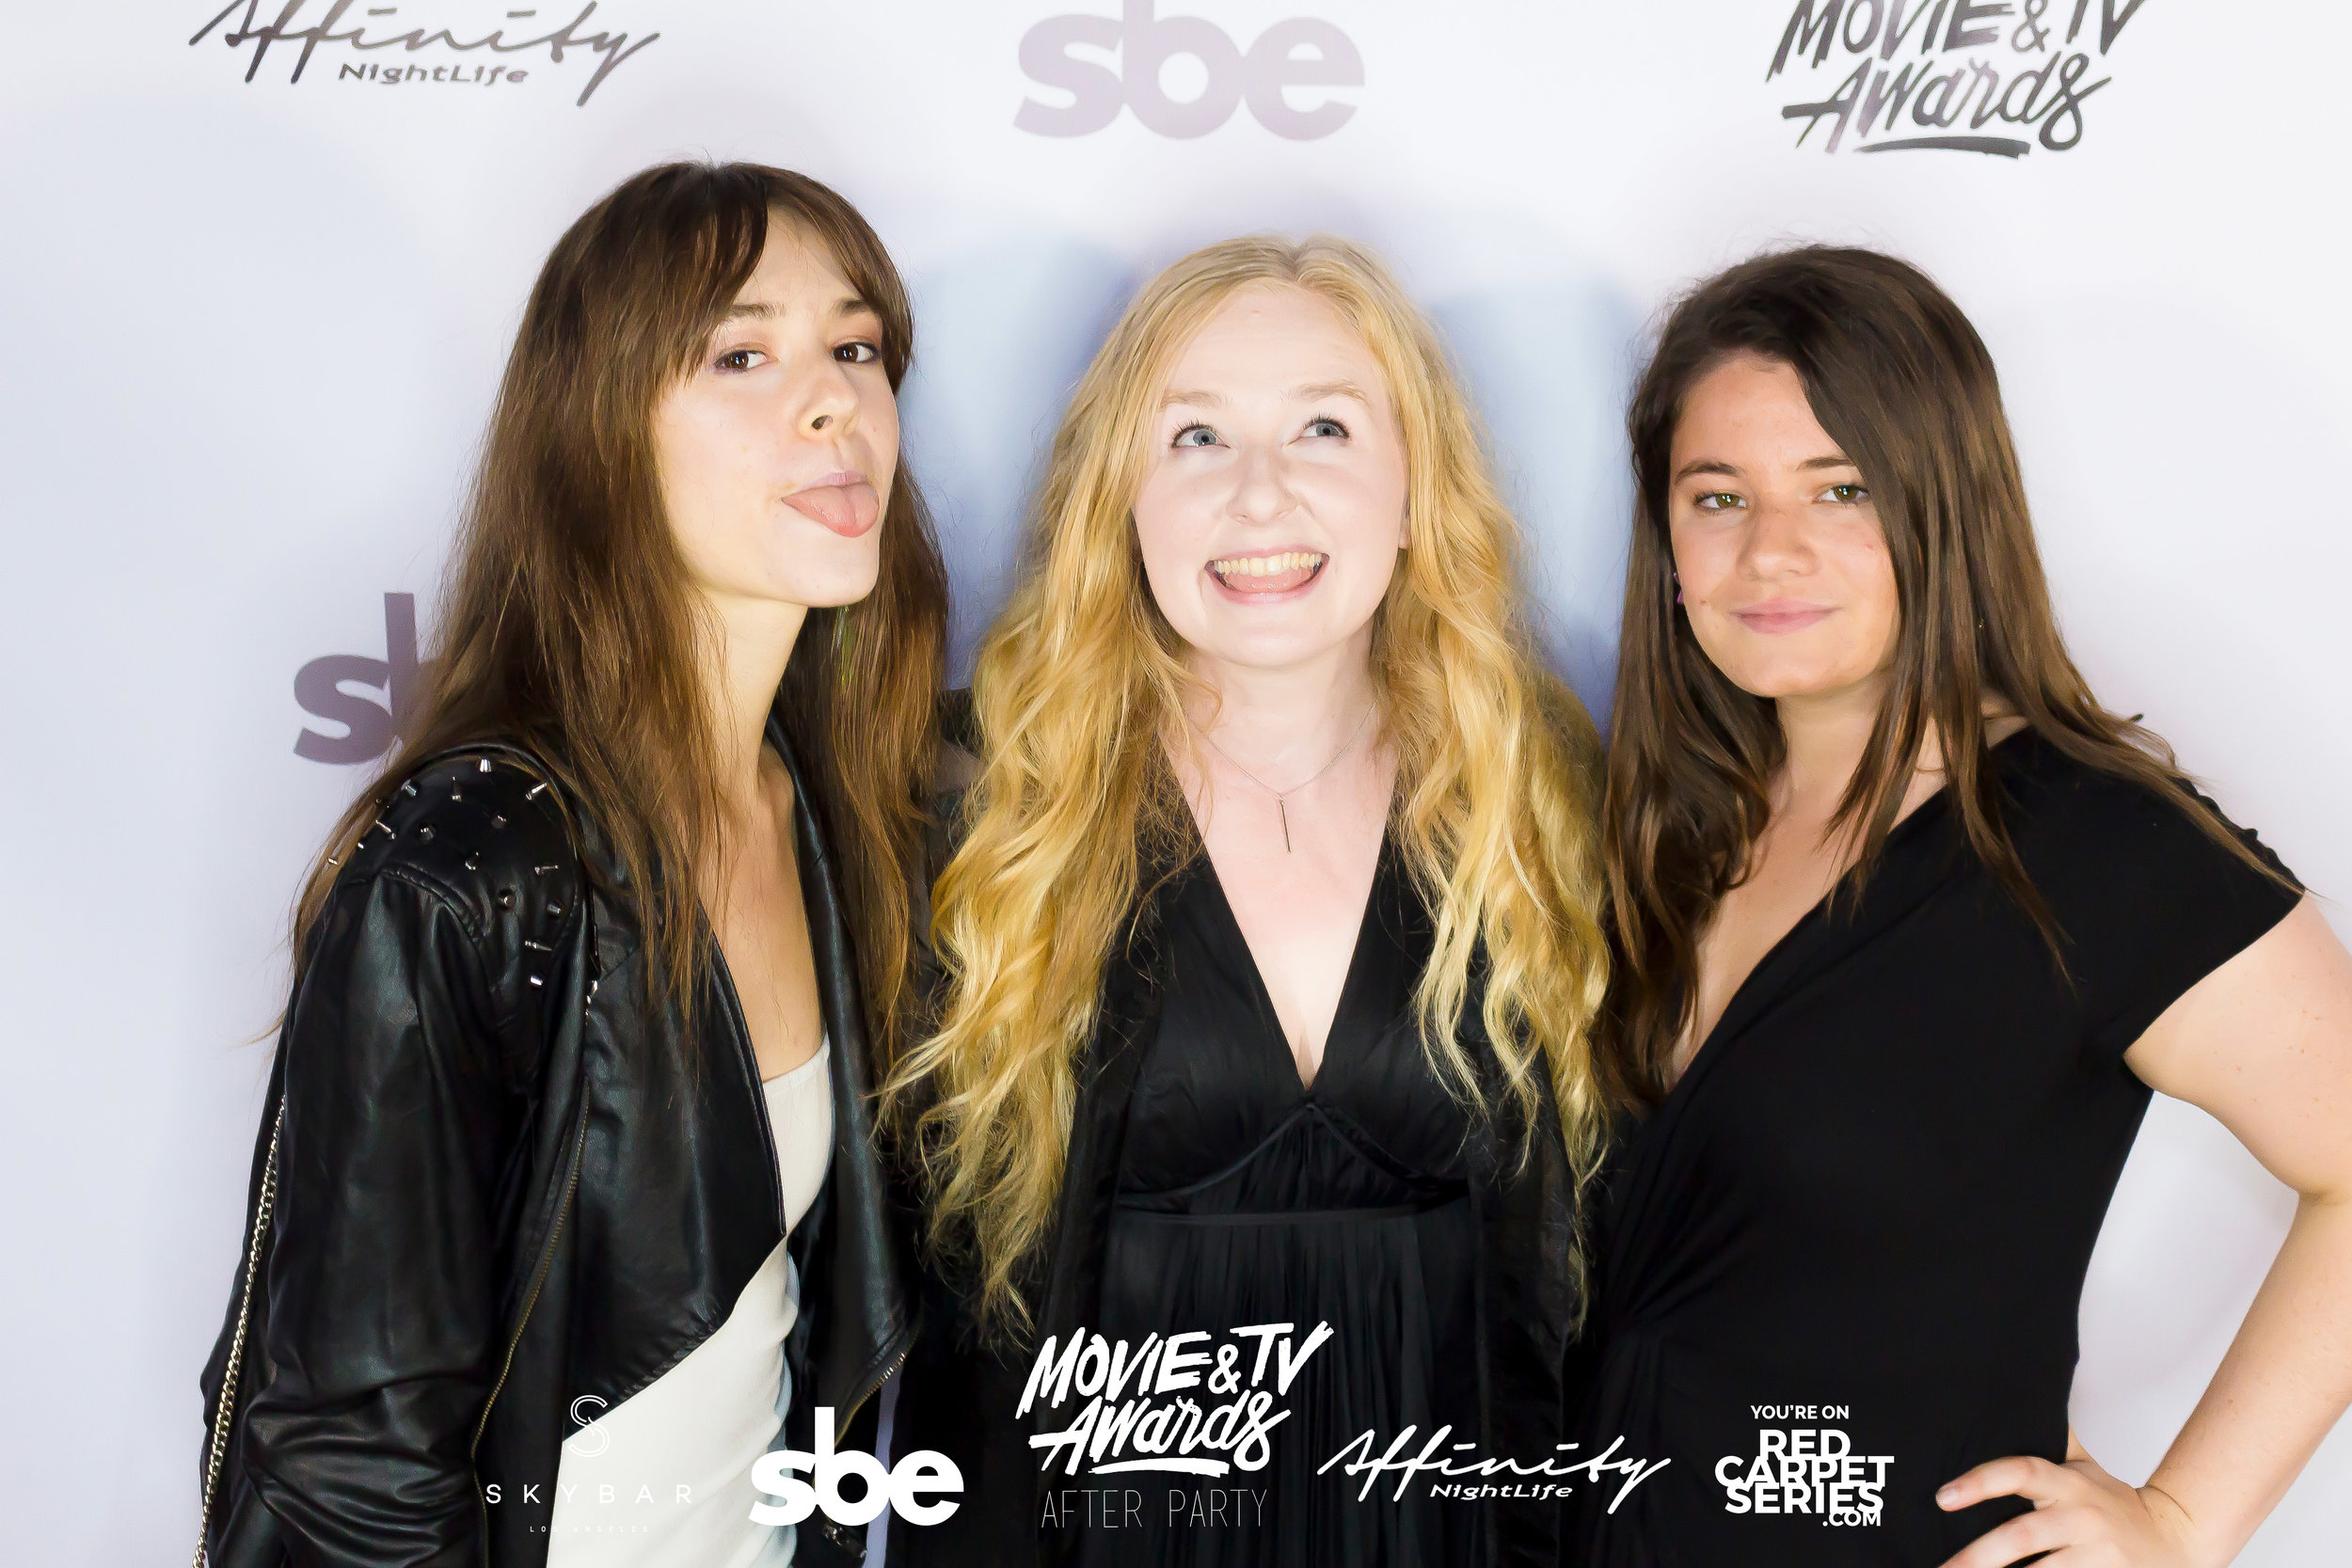 Affinity Nightlife MTV Movie & TV Awards After Party - Skybar at Mondrian - 06-15-19 - Vol. 2_69.jpg